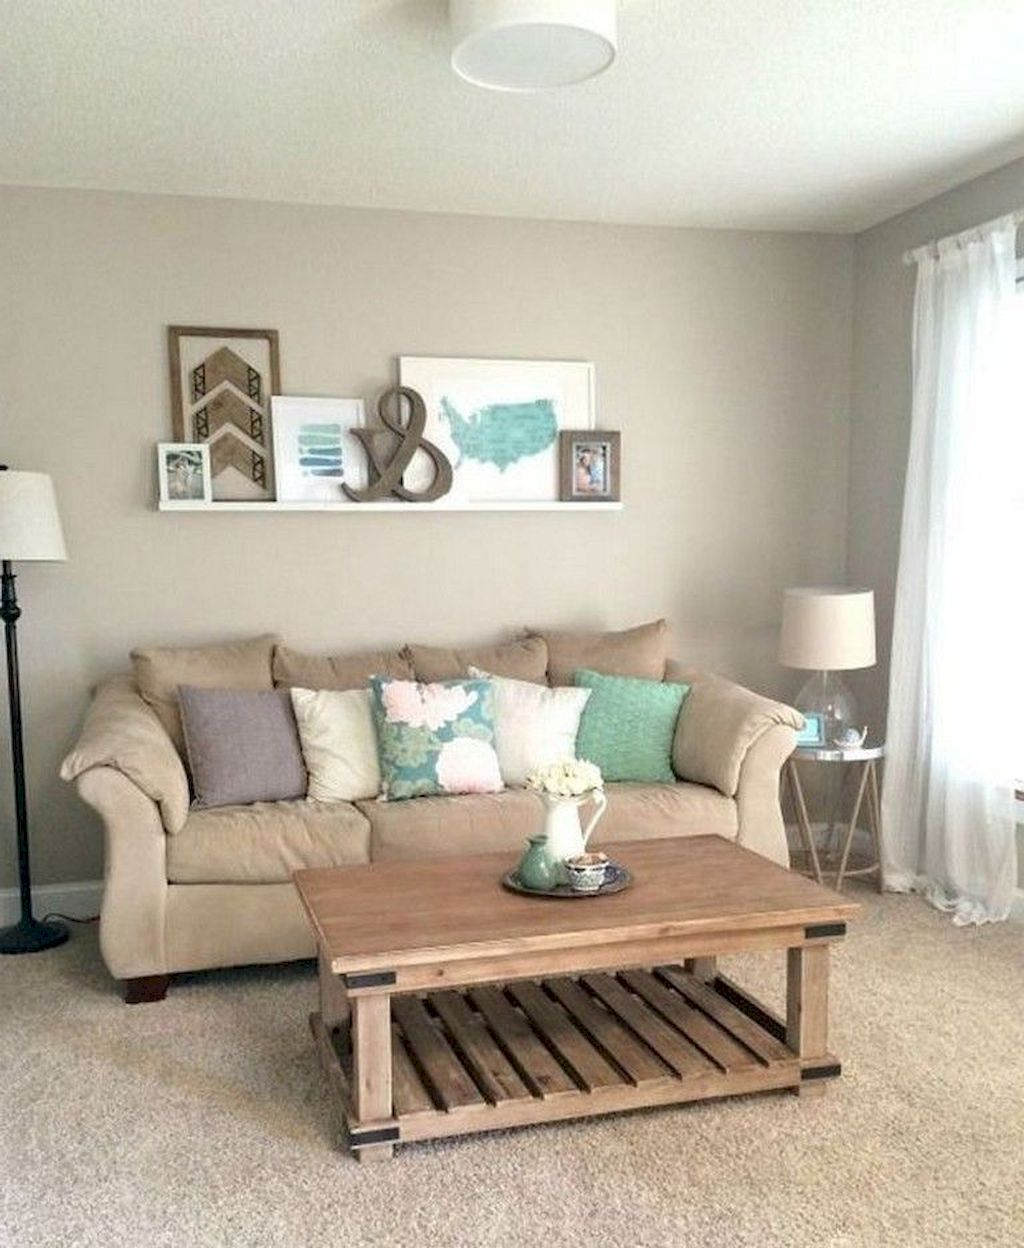 Home Design Ideas Budget: 65 First Apartment Decorating Ideas On A Budget